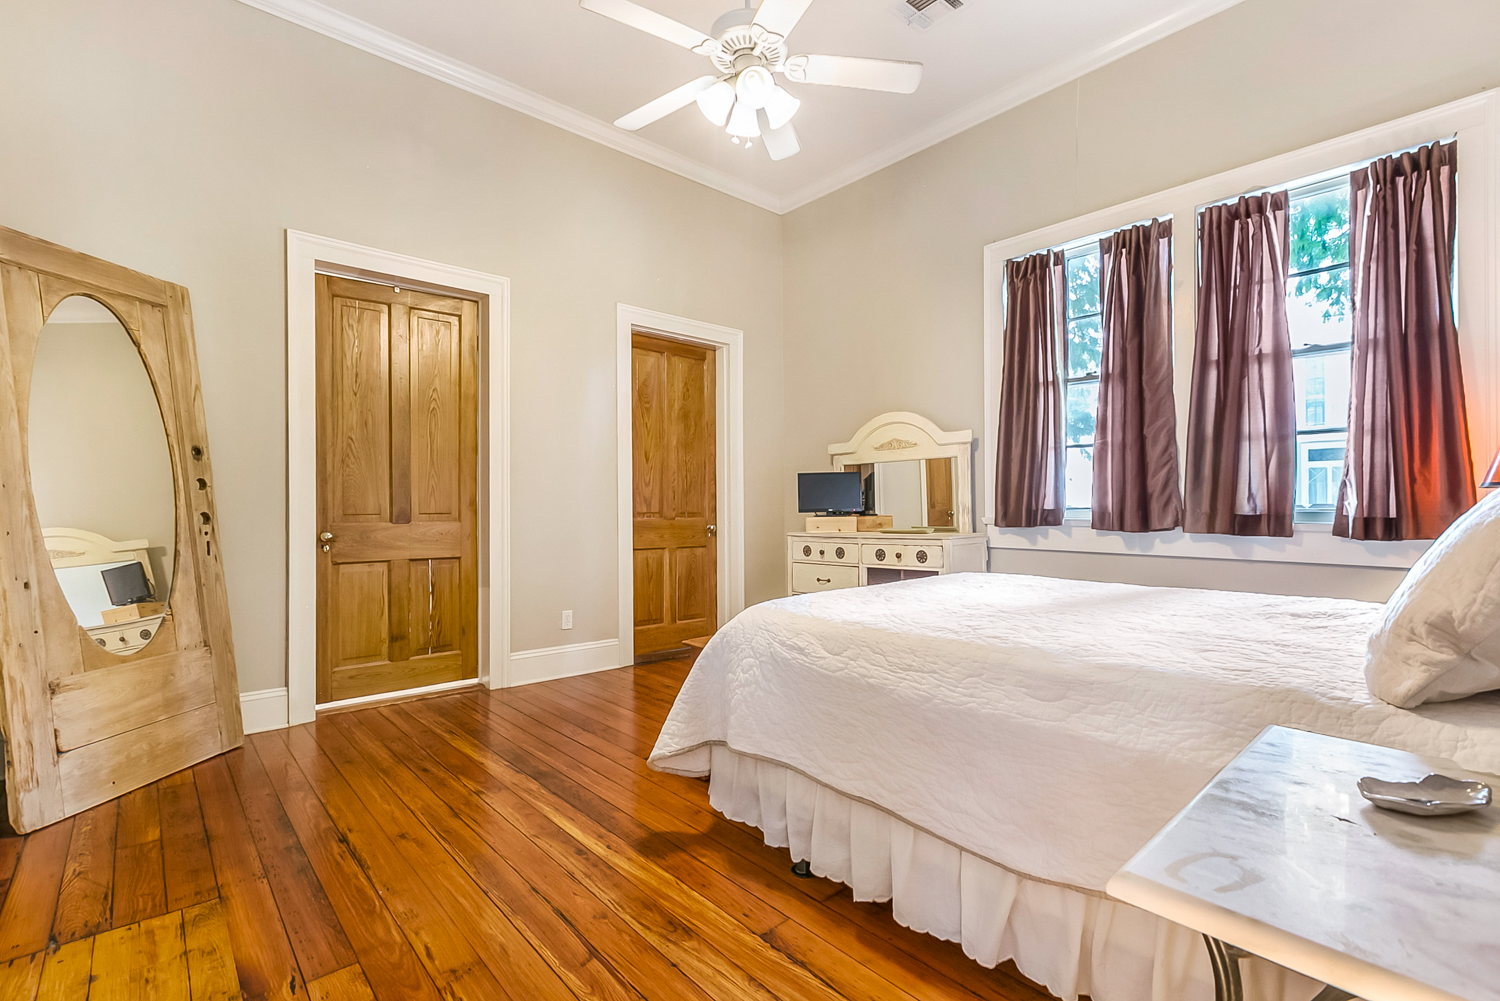 Uptown, House, 3 beds, 2.0 baths, $3000 per month New Orleans Rental - devie image_10